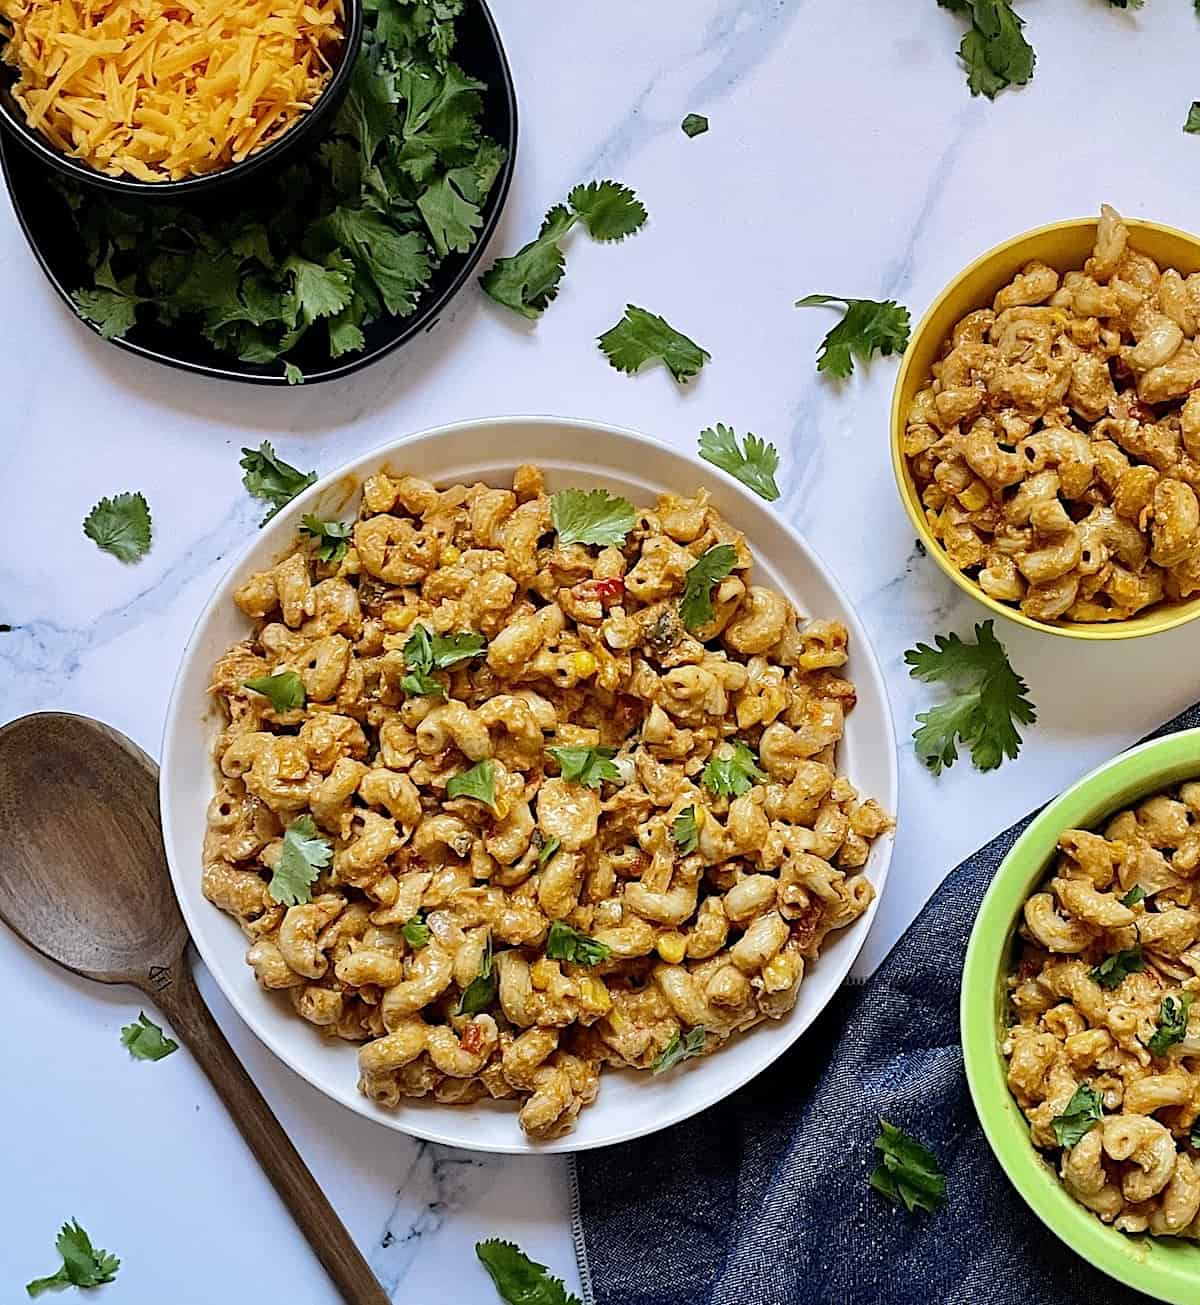 Instant Pot chicken taco pasta in 3 bowls on a white background, garnished with cilantro and cheddar cheese